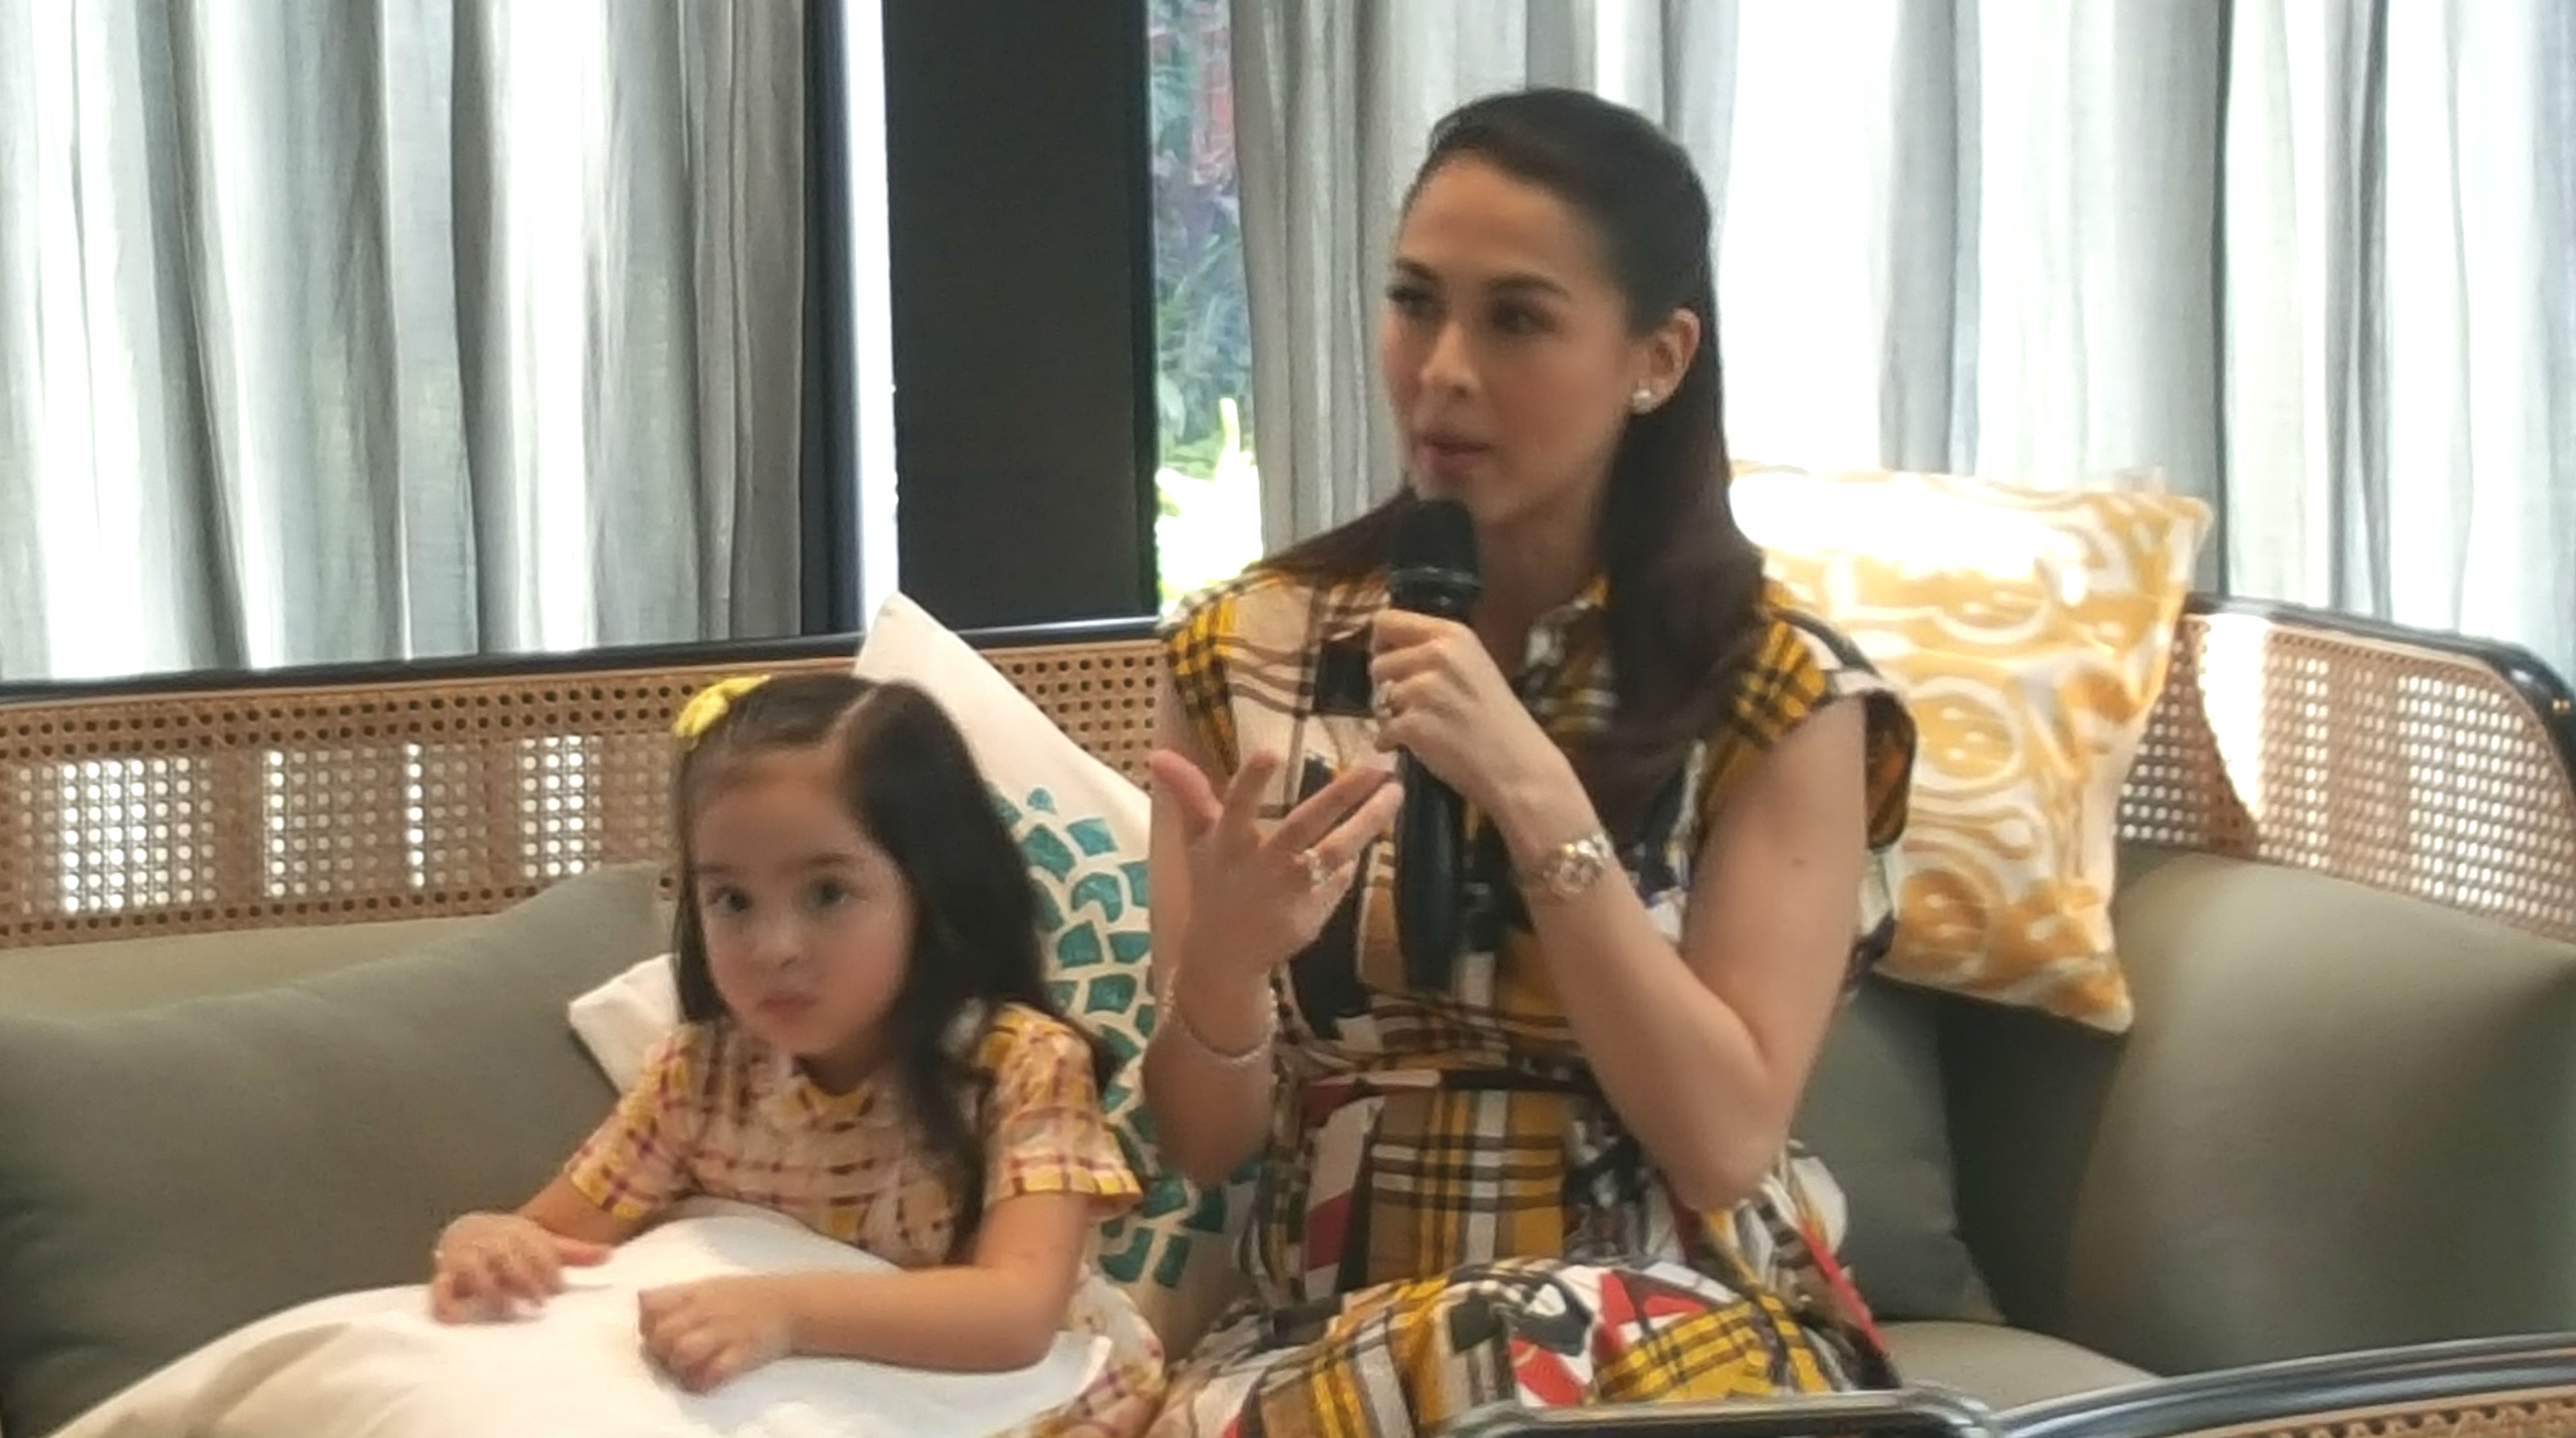 TIME WITH ZIA. Marian and Zia are the new faces of Nido 3+ milk. The actress, who is pregnant with baby number 2, is expected to give birth in the summer.